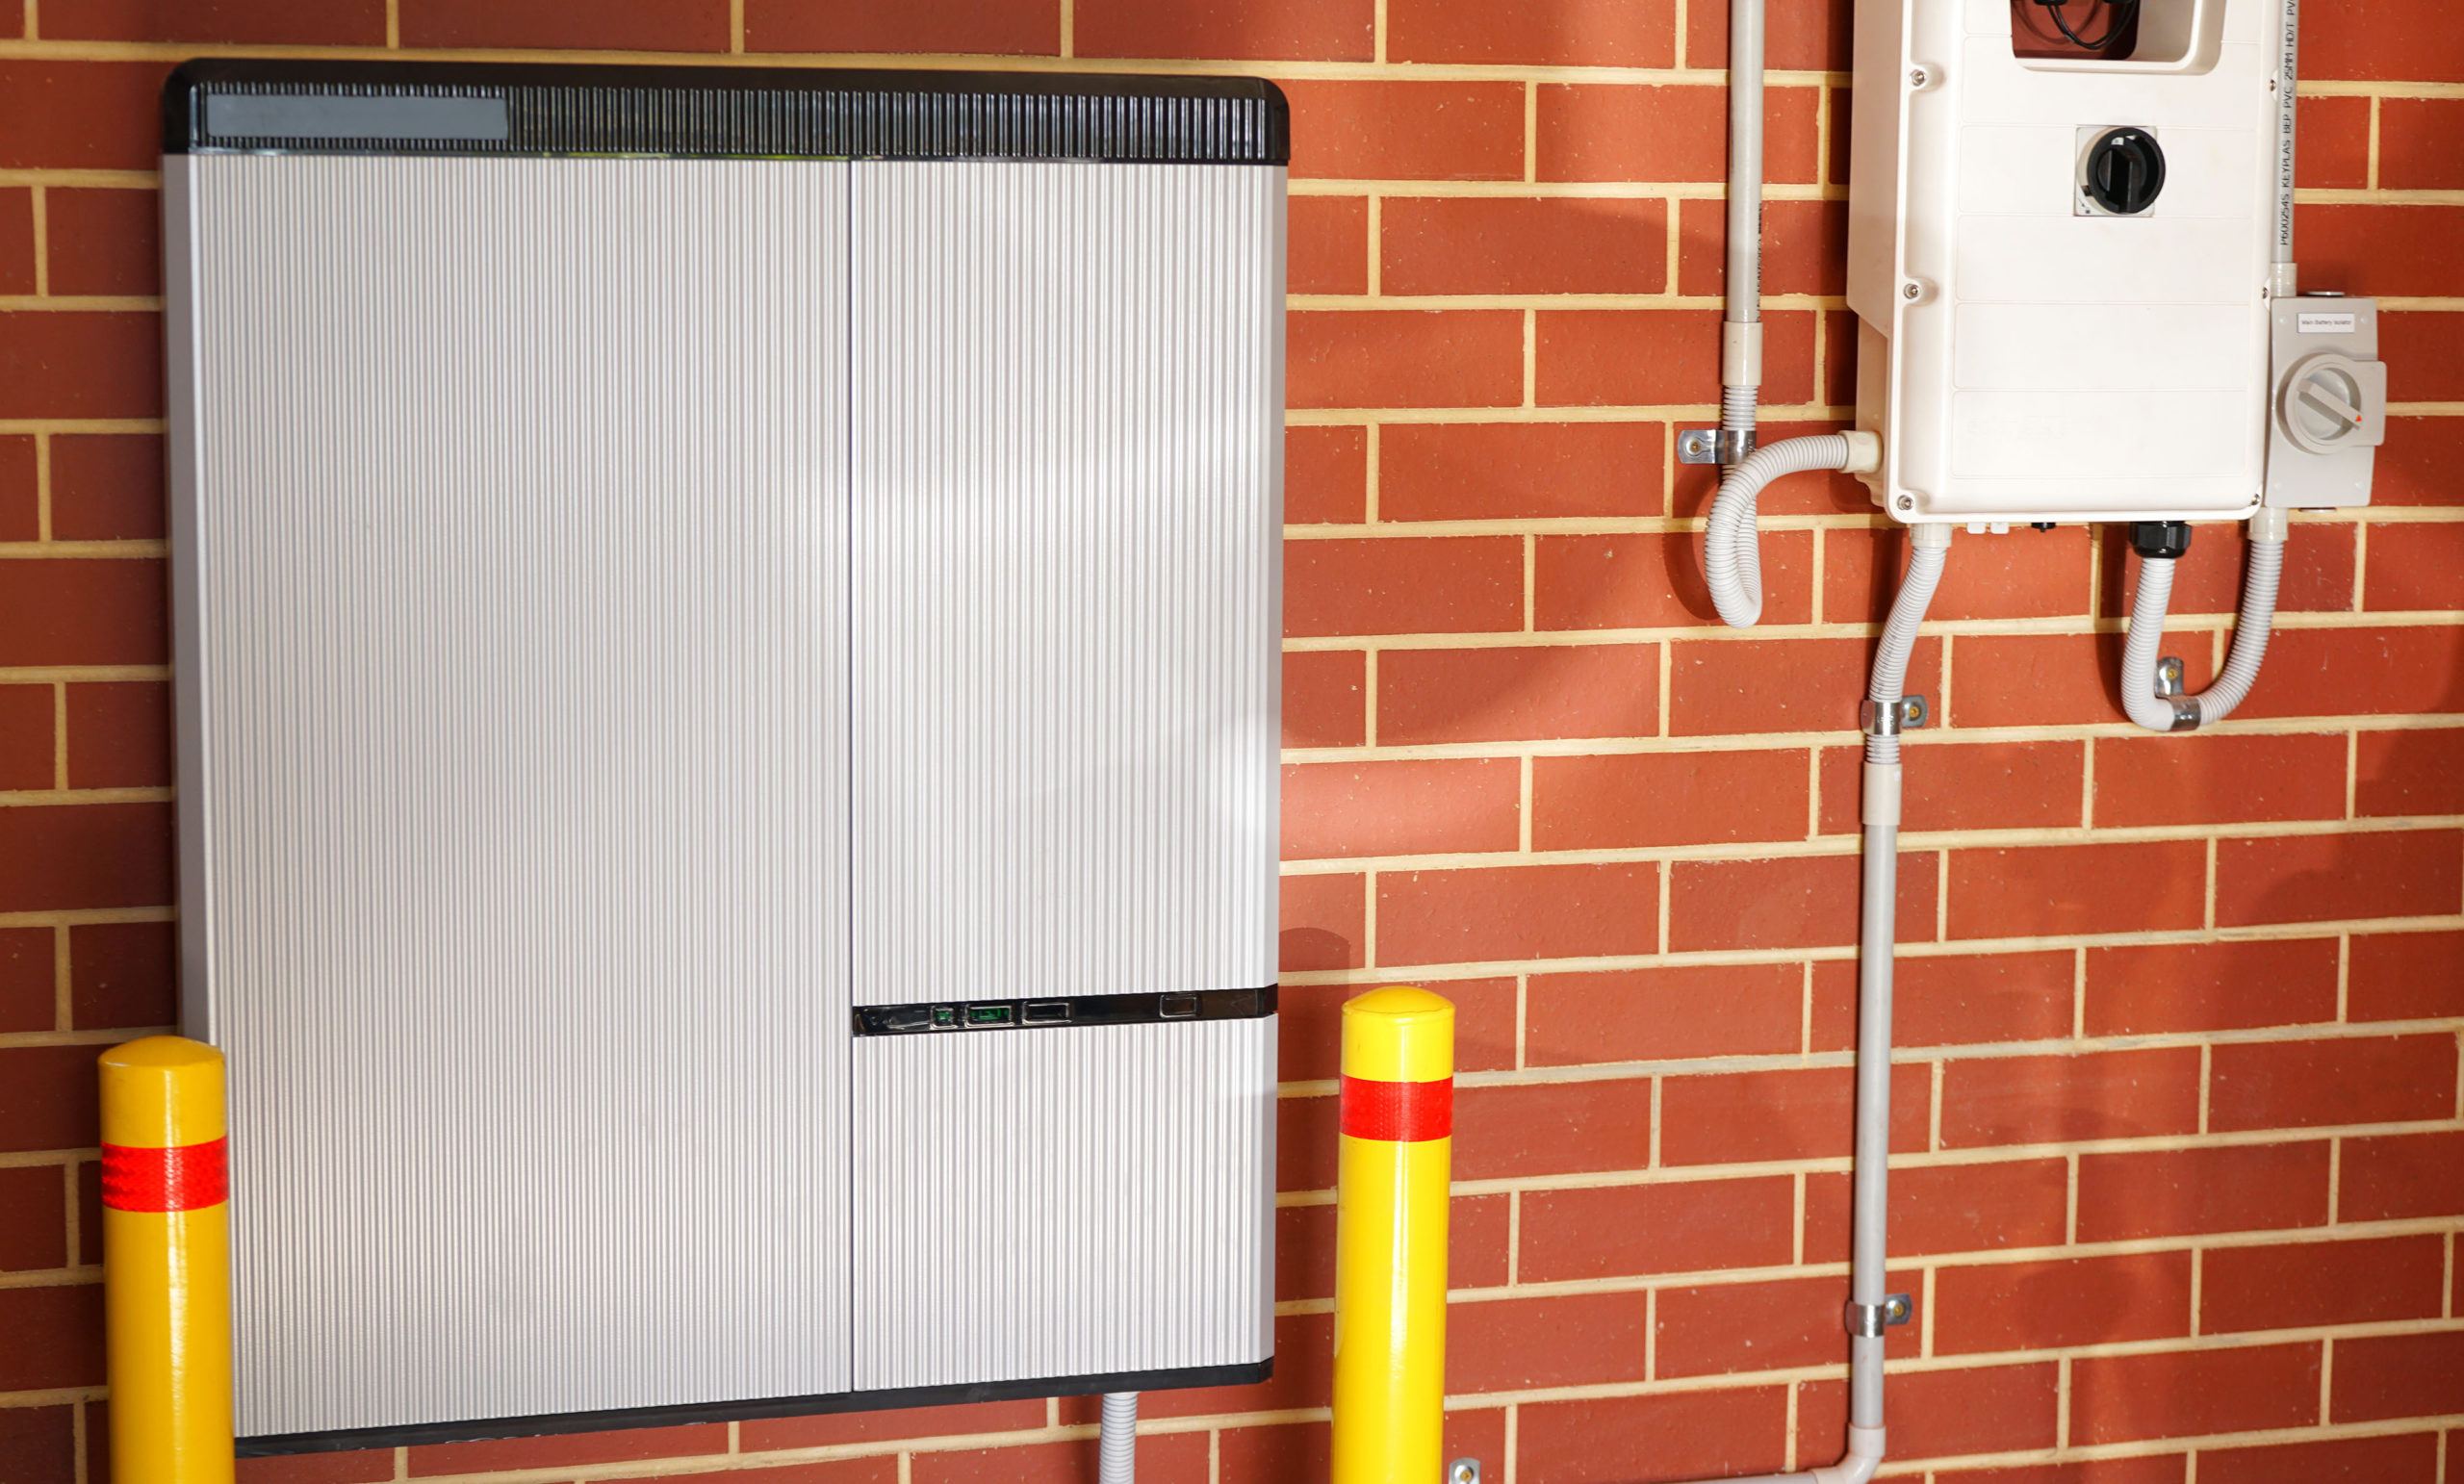 Lithium ion home battery and solar inverter solar panel system for domestic power storage installed in home garage.